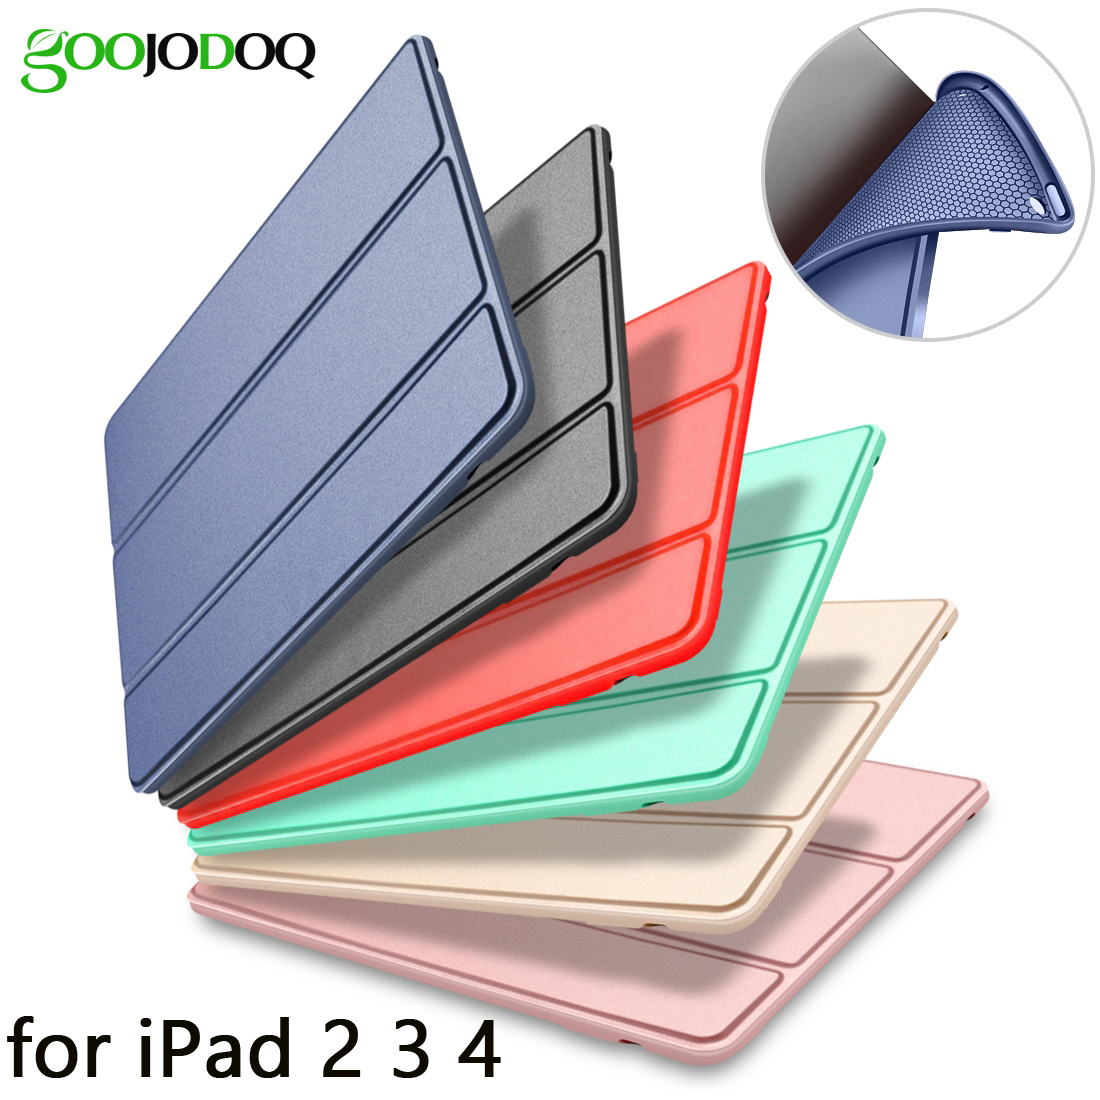 Case for iPad 2 3 4 Case Silicone Soft Back Folio Stand with Auto Sleep/Wake Up PU Leather Smart Cover for iPad 3 4 2 Case luxury lattice cover case for ipad 2 3 4 pu leather protective case for ipad 2 ipad 3 ipad 4 9 7 inch auto wake cover